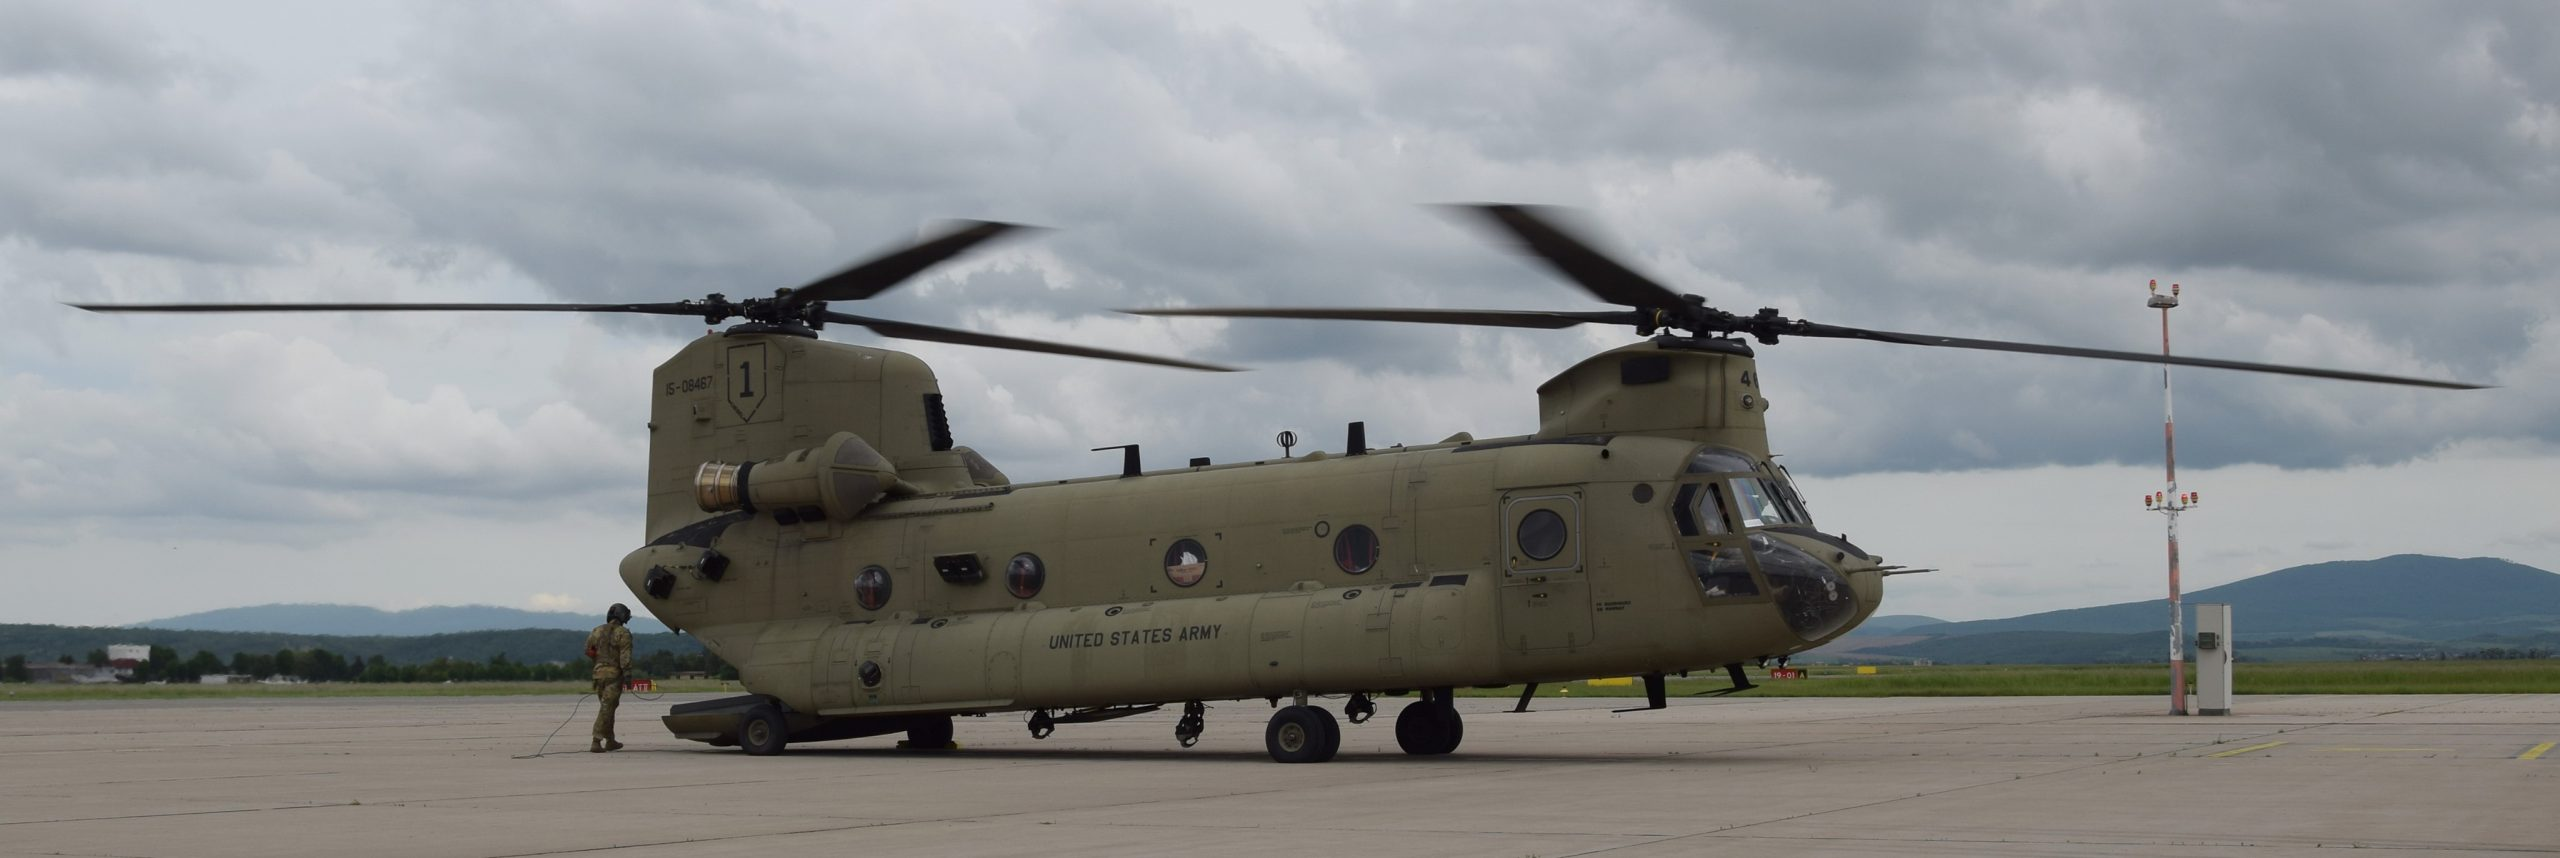 Boeing CH-47 Chinook United States ARMY